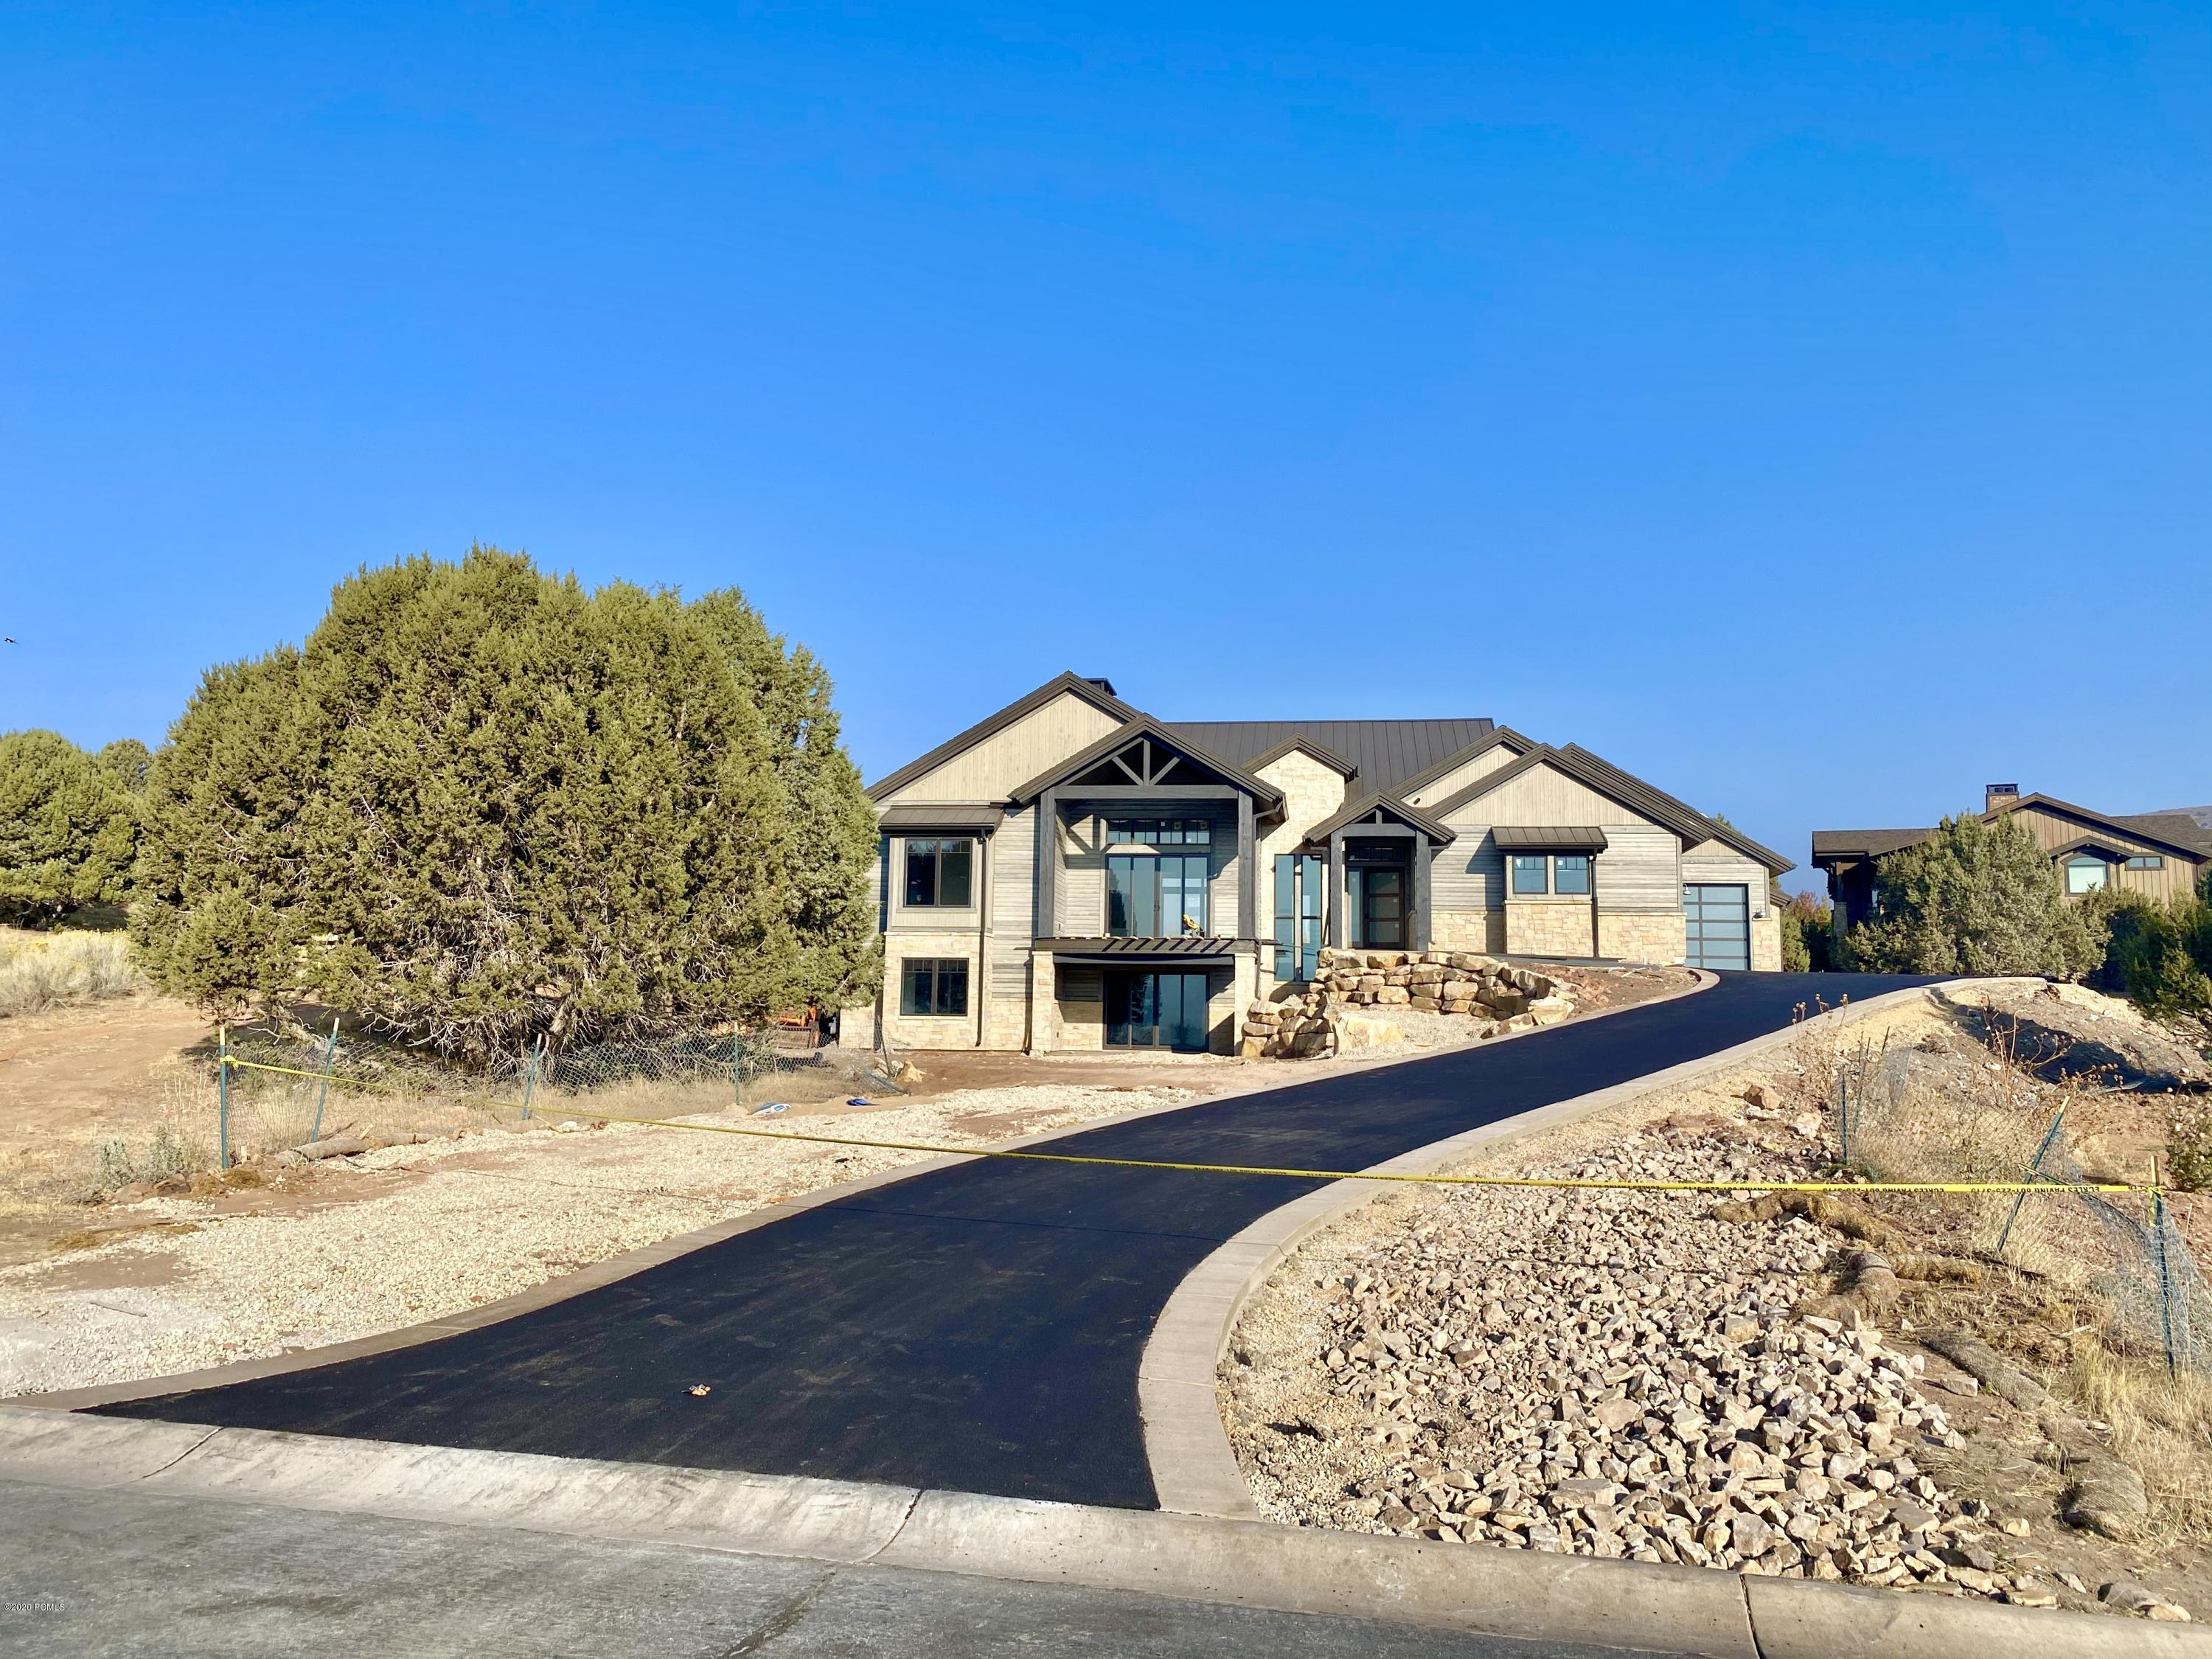 283 Ibapah Peak Drive, Heber City, Utah 84032, 5 Bedrooms Bedrooms, ,4 BathroomsBathrooms,Single Family,For Sale,Ibapah Peak,12001251